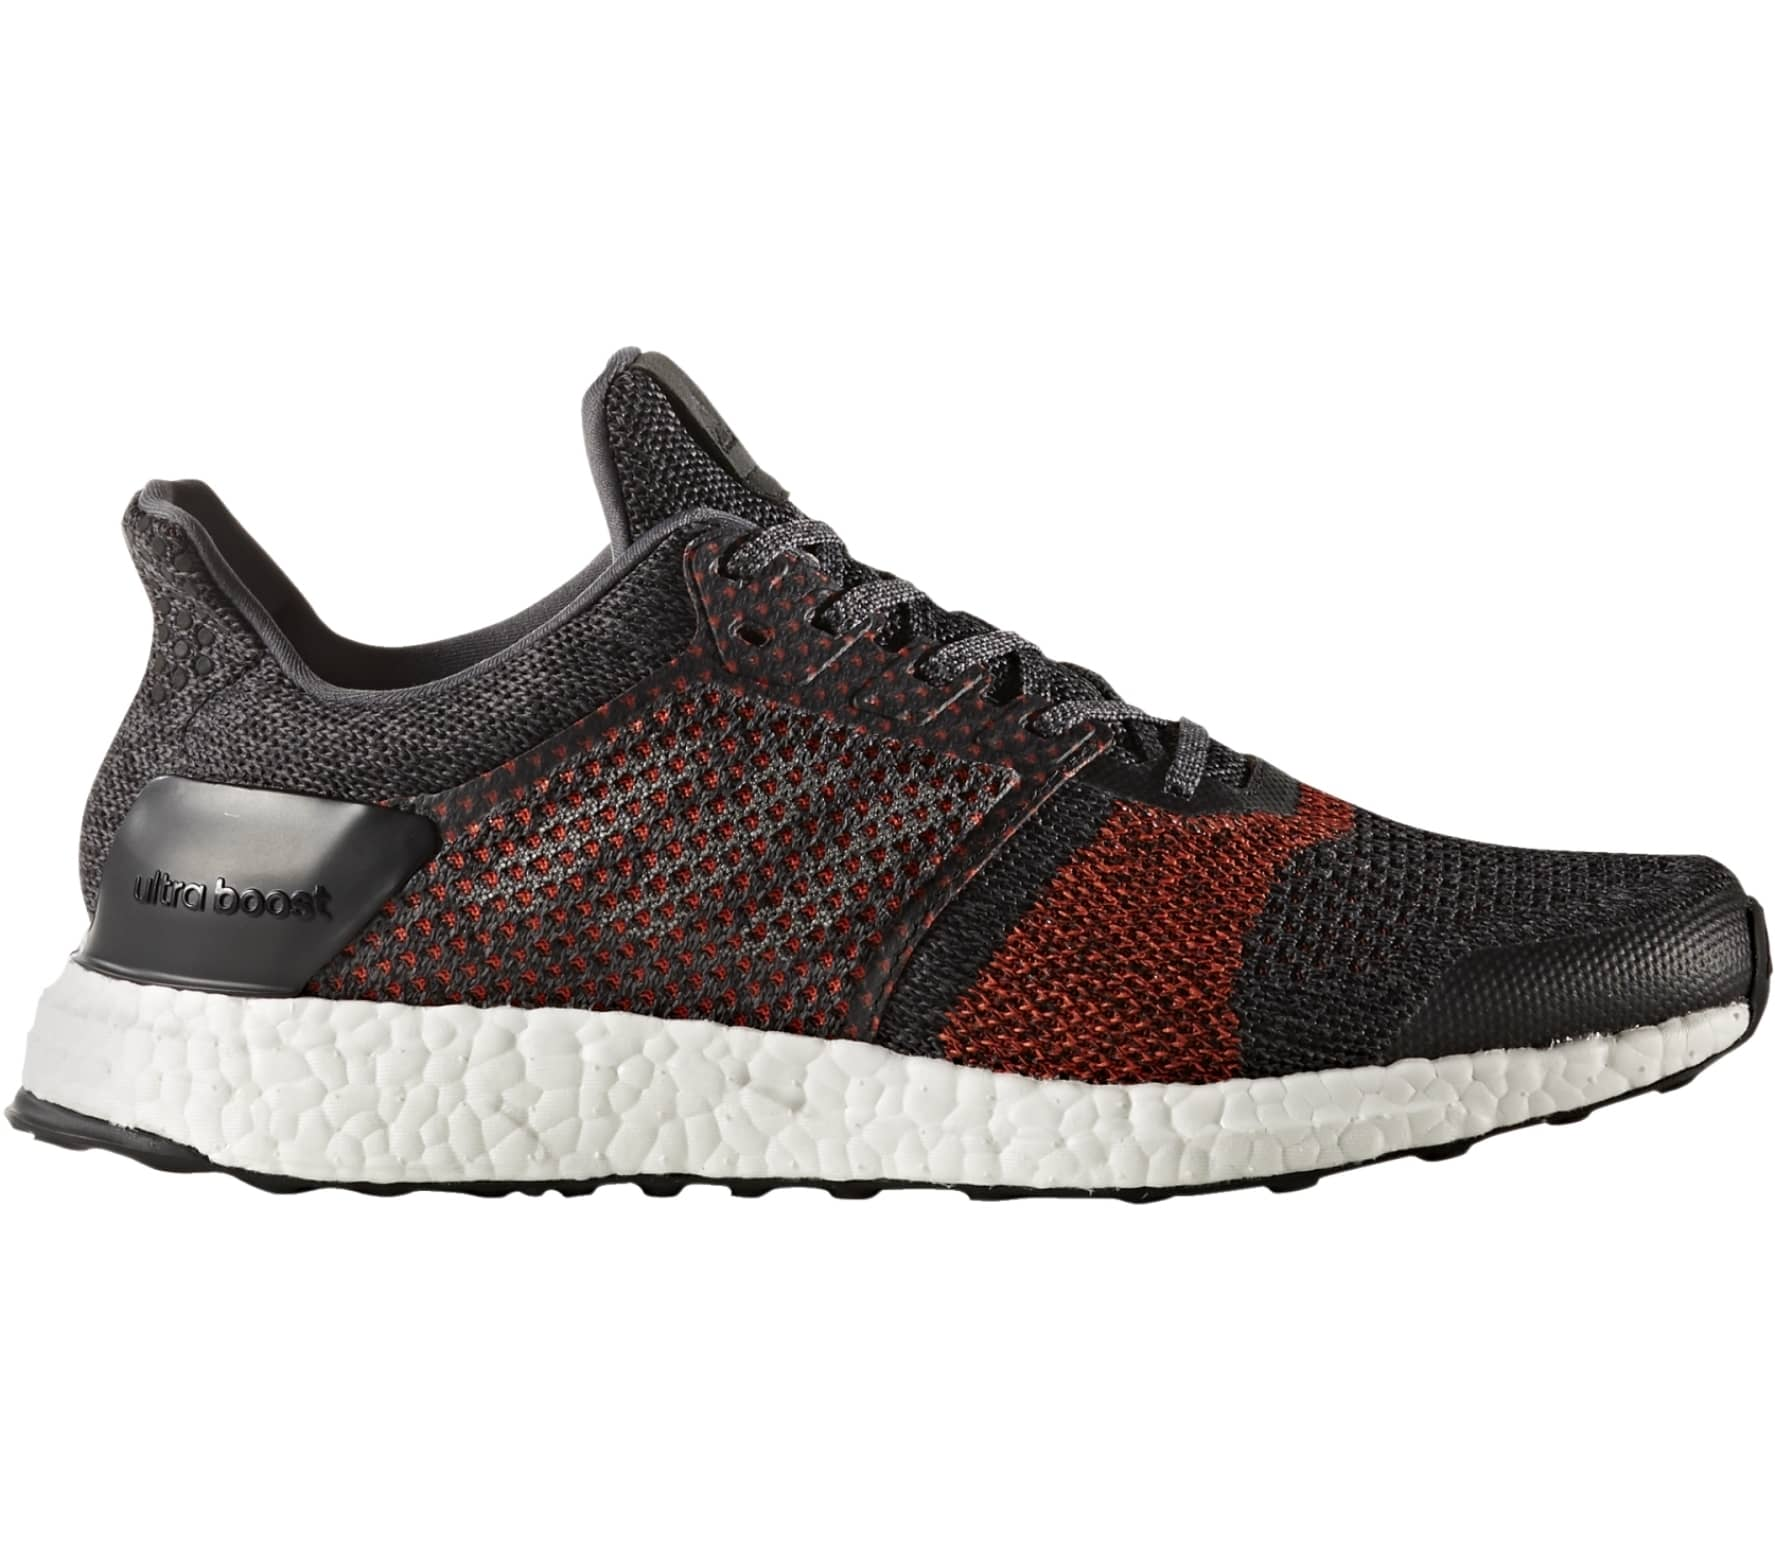 newest 4087d d8514 Adidas - Ultra Boost ST mens running shoes (dark redblack)